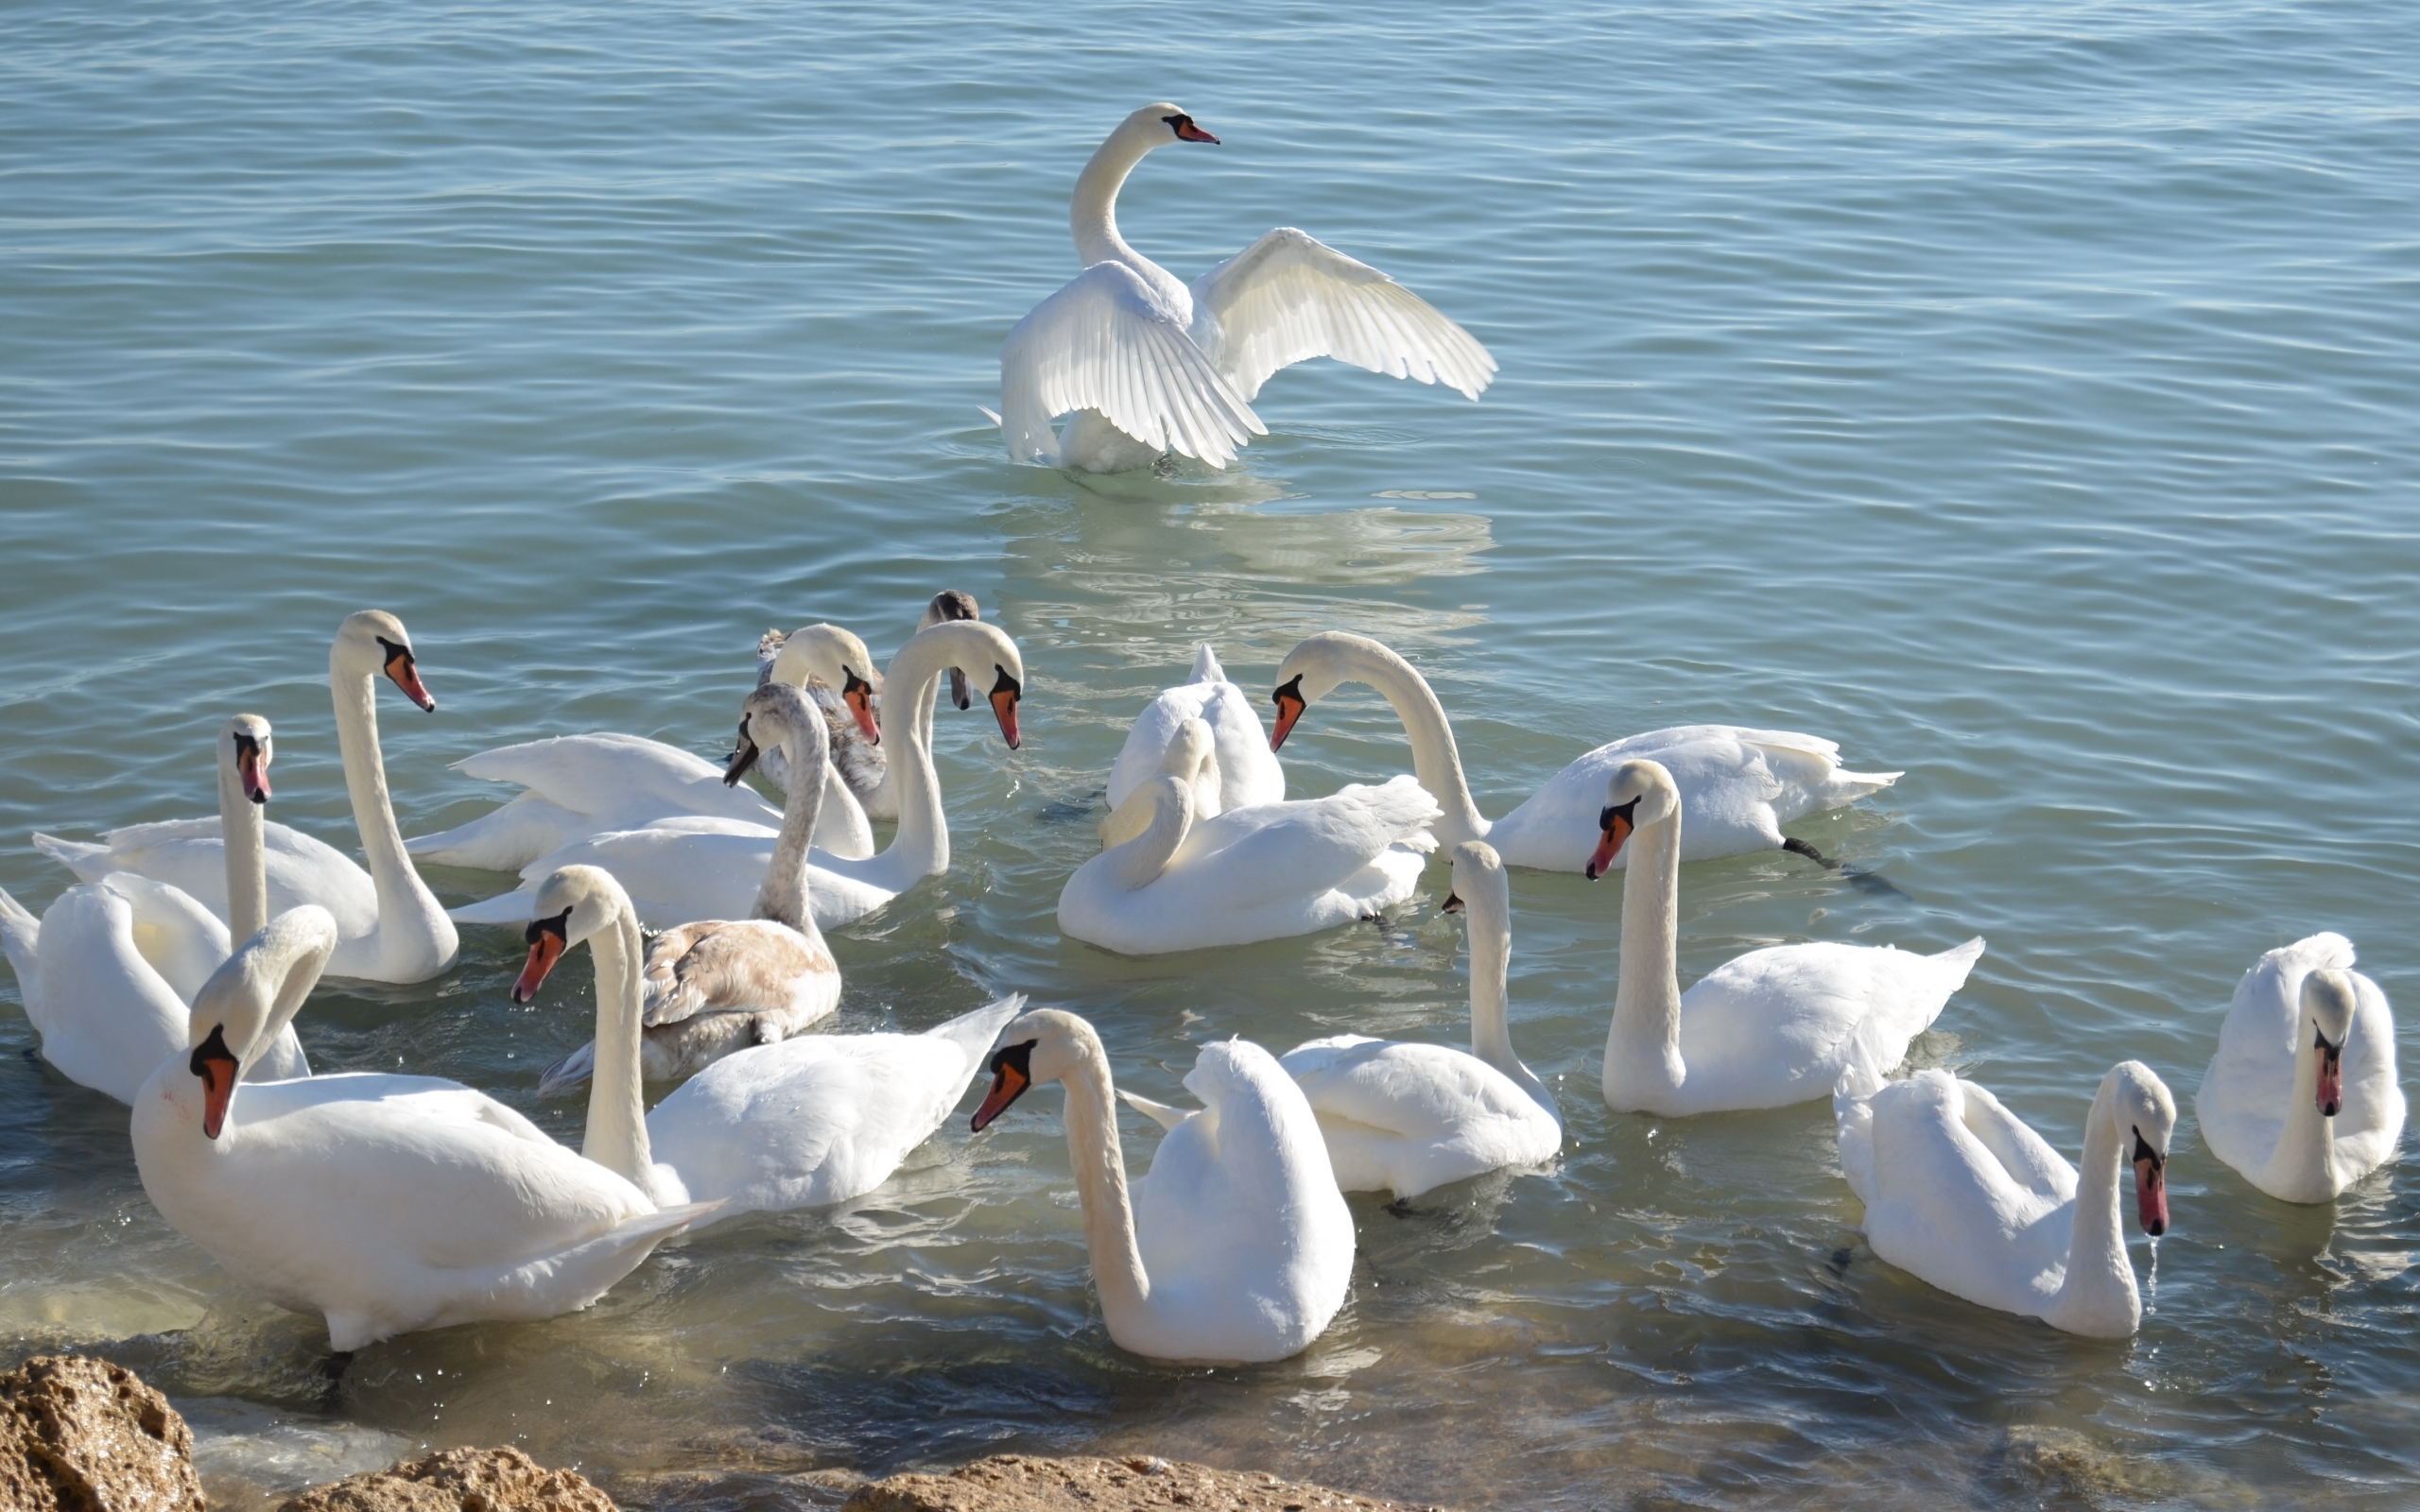 41060 download wallpaper Animals, Birds, Swans screensavers and pictures for free